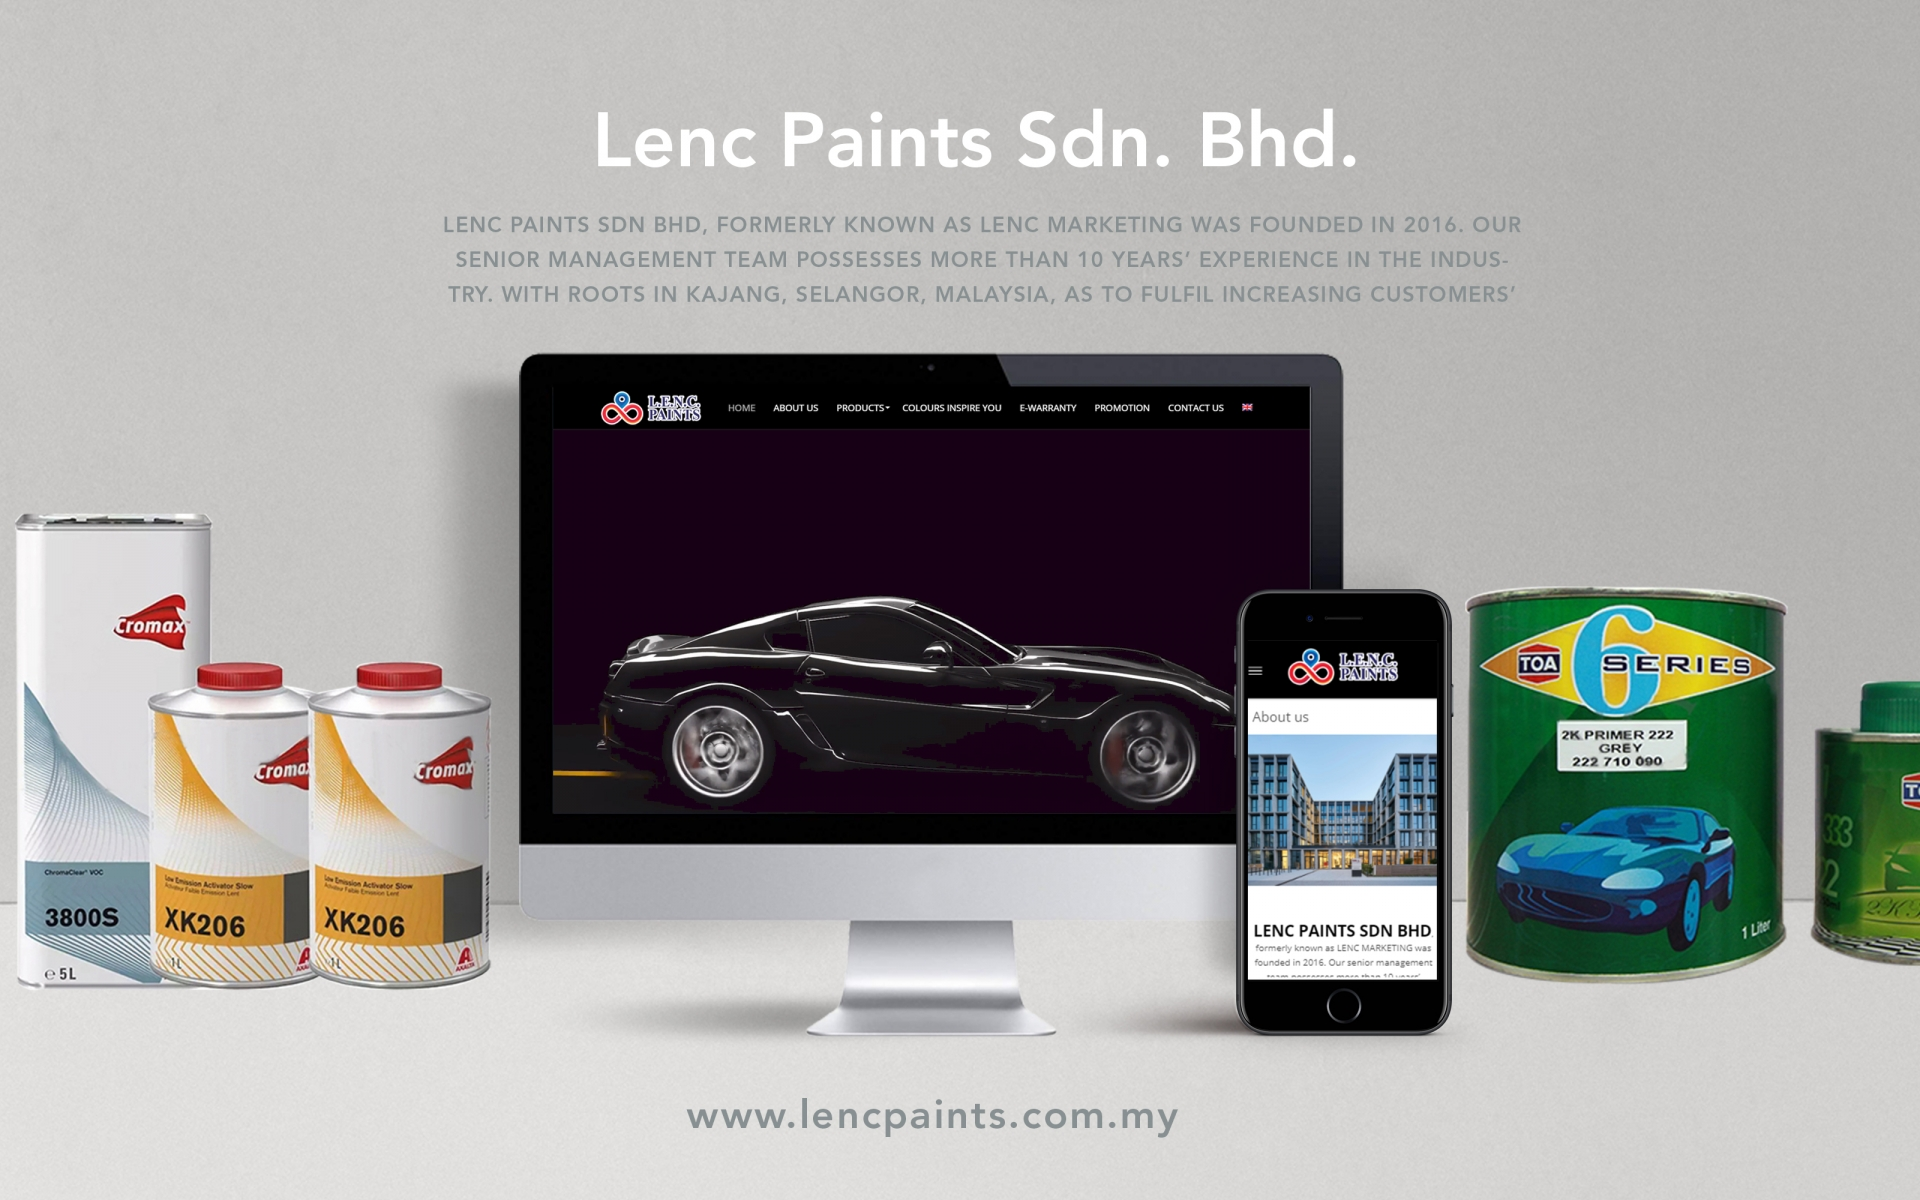 "<a href=""http://welcome.lencpaints.com.my"" target=""_blank"">Lenc Paint Sdn. Bhd.</a>"